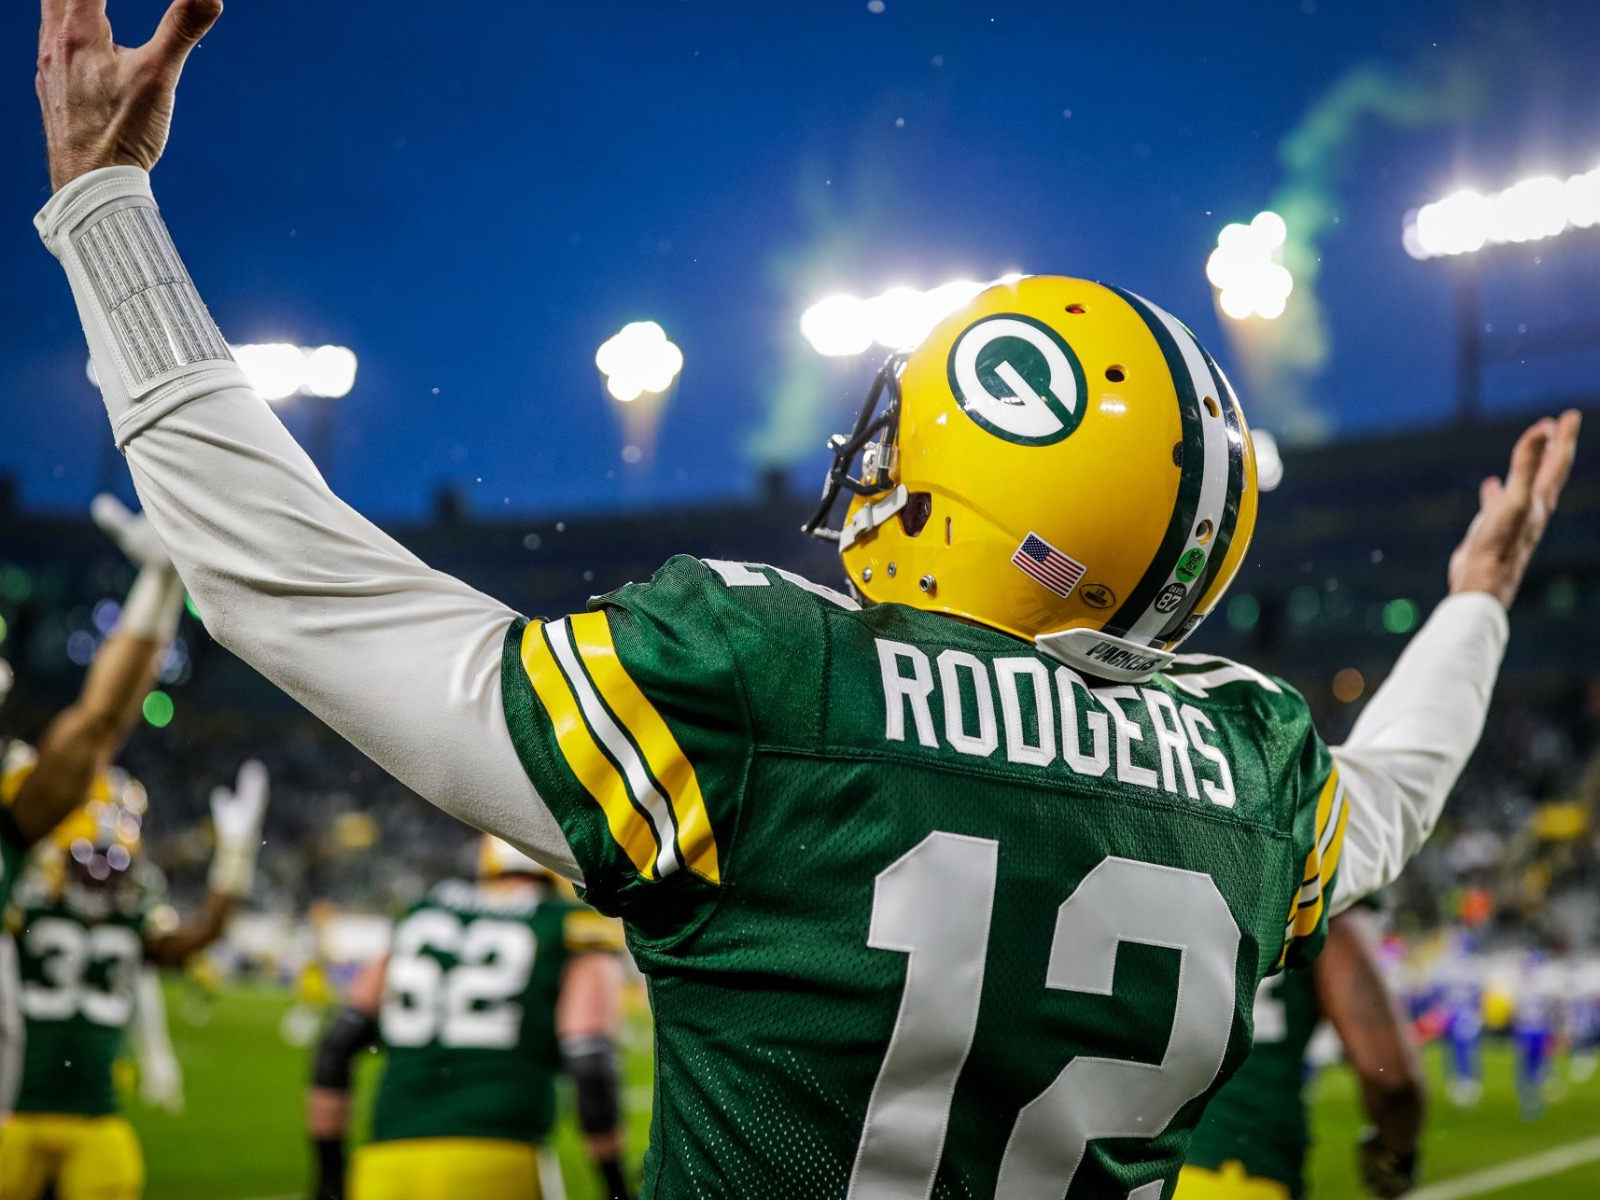 Championship bound: 11 images from the Packers' 32-18 win over the Rams